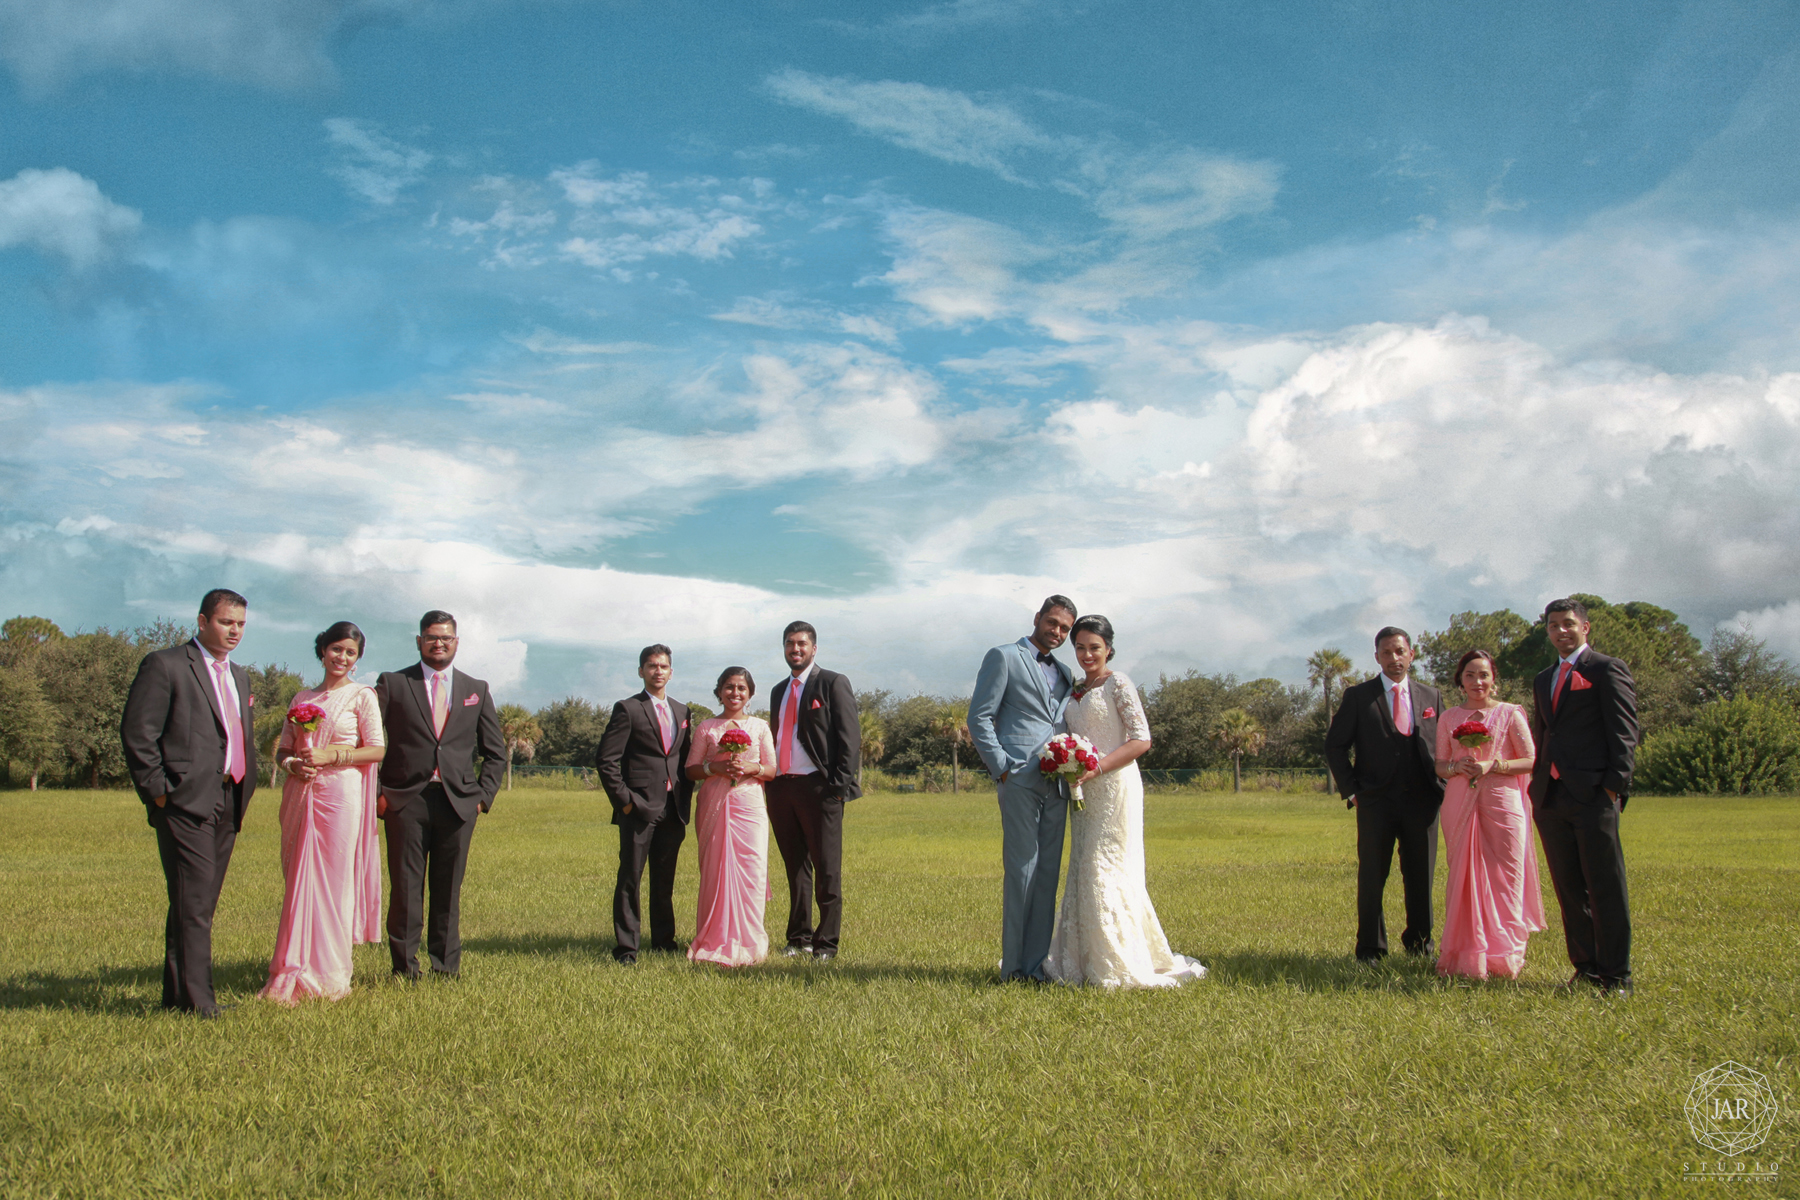 Orlando Florida Wedding Fina Art Photographer